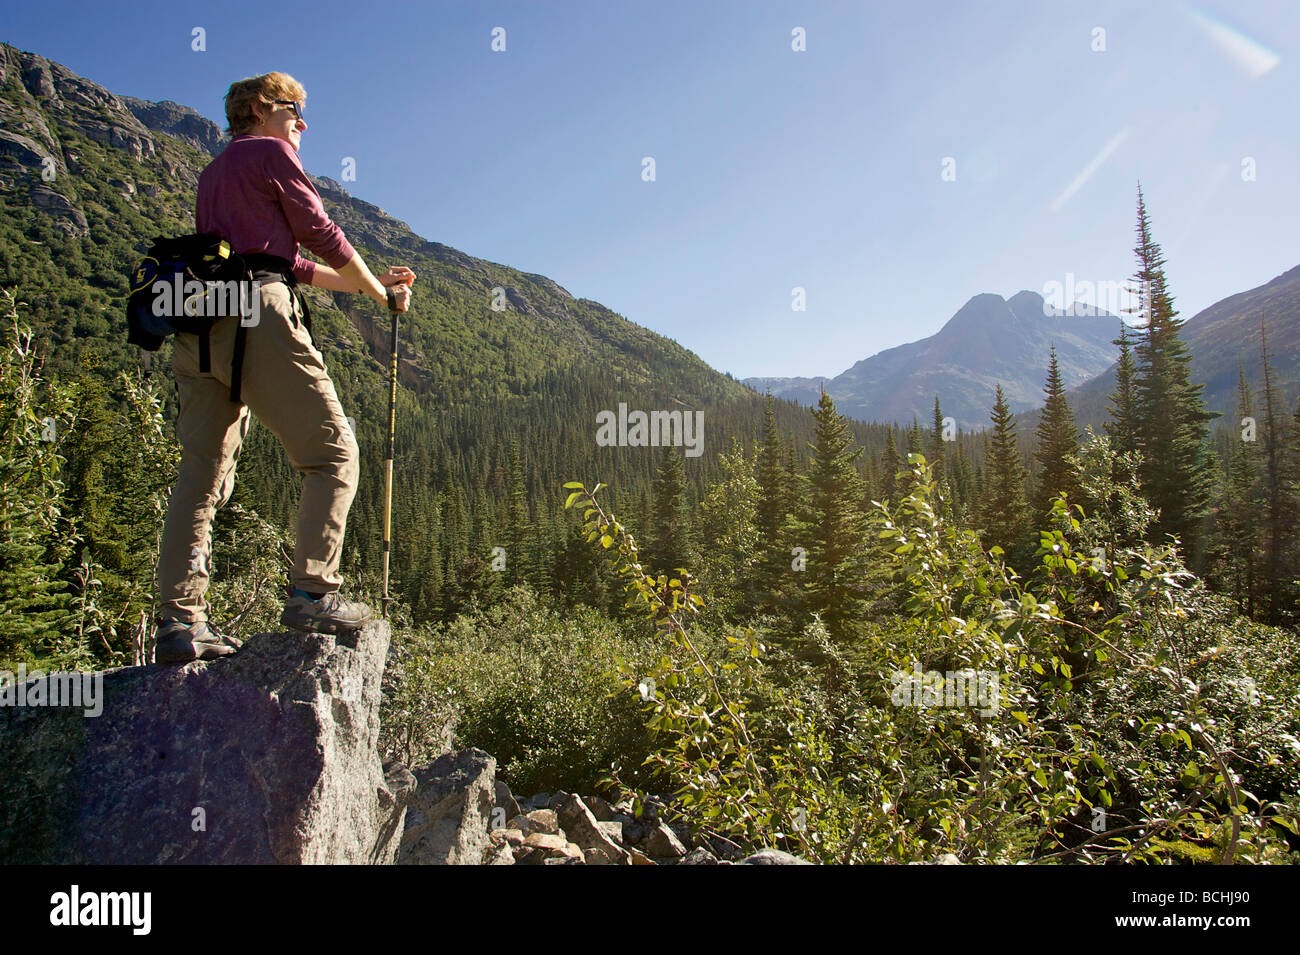 Hiker enjoys the scenery while on the White Pass Trail Heli-Hike hiking tour in the Tongass National Forest, Alaska - Stock Image